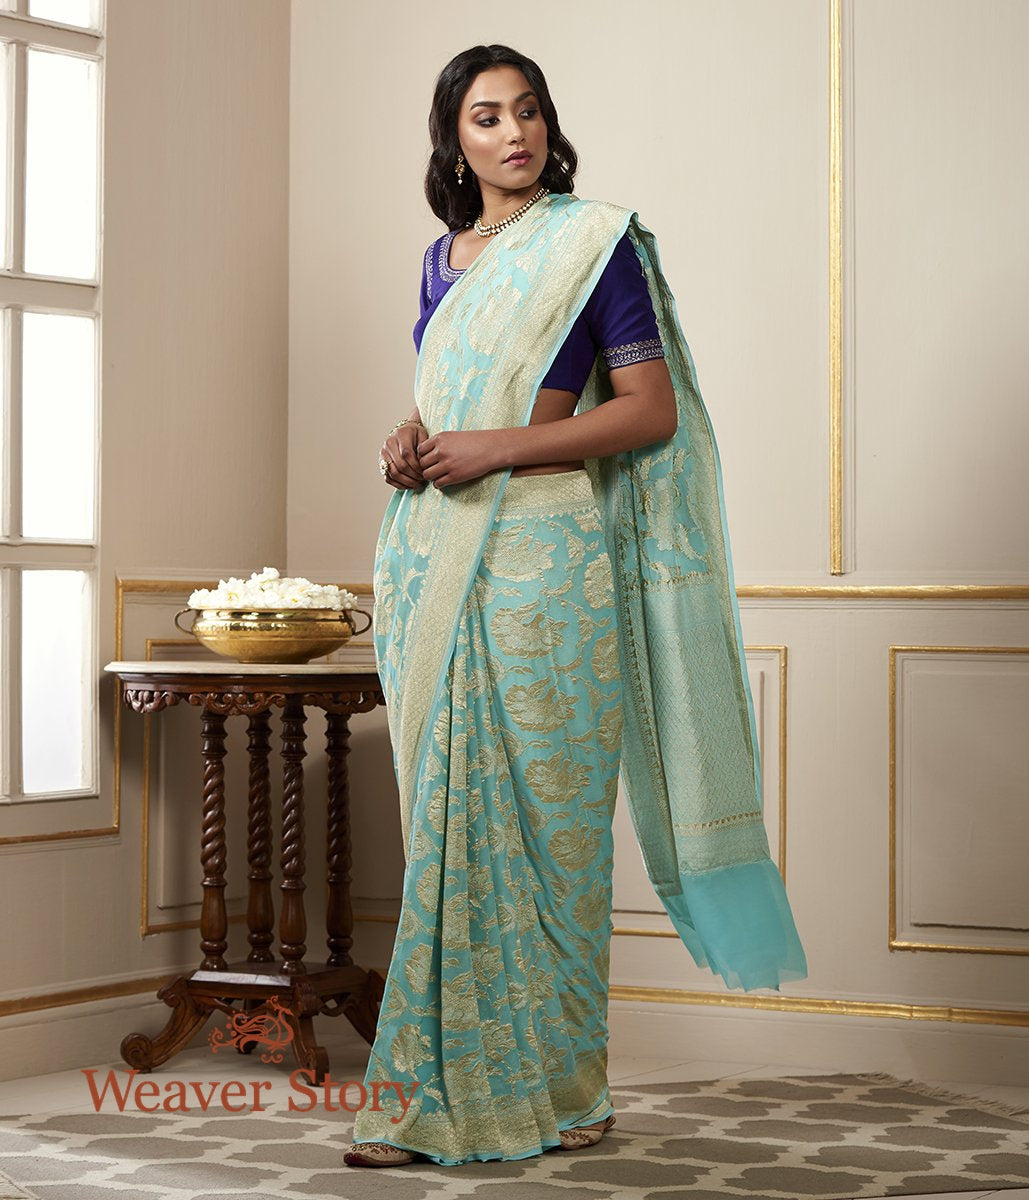 Handwoven Banarasi Sea Green Banarasi Georgette Saree with Floral Jaal